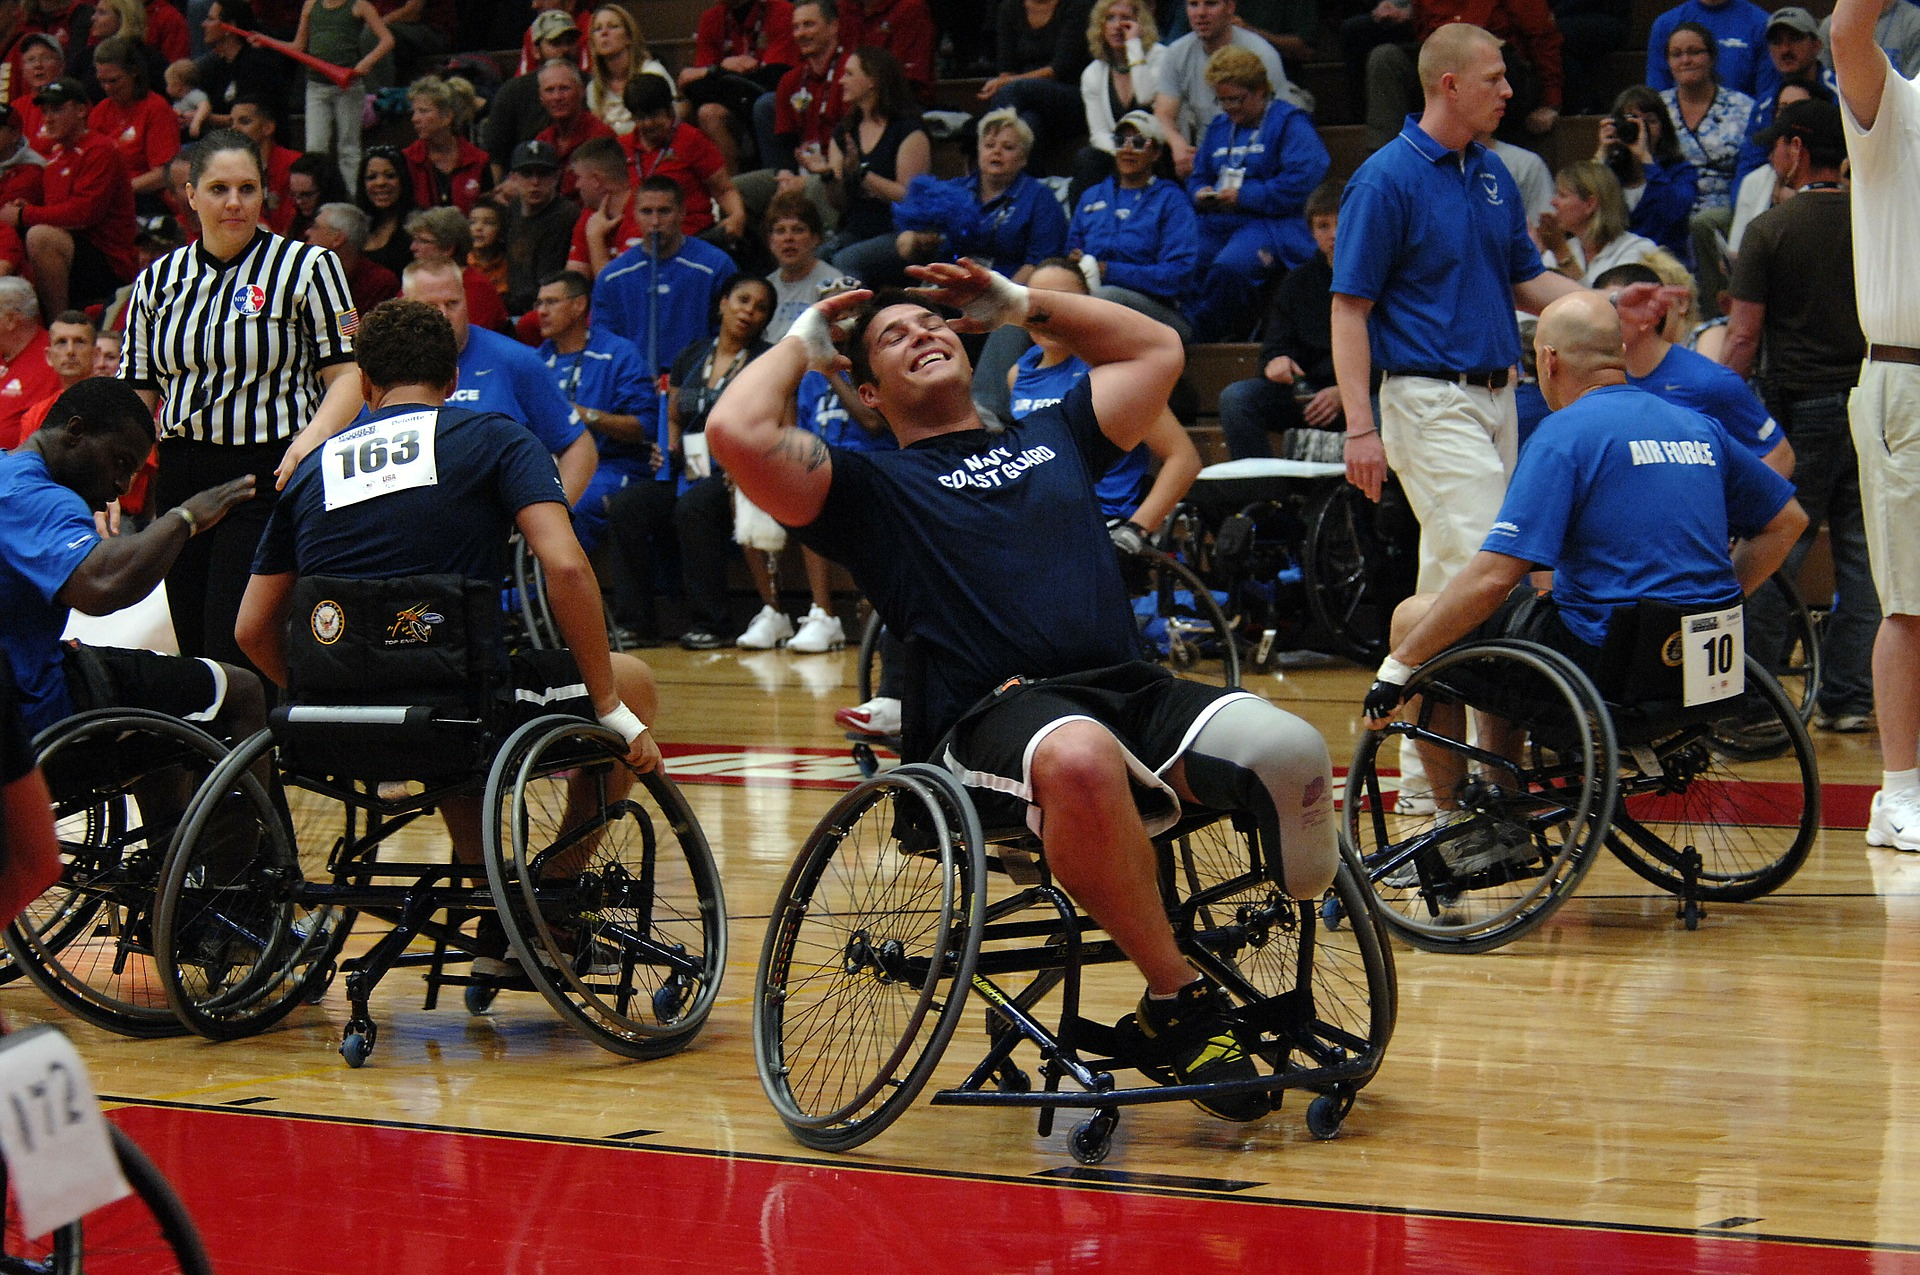 Wheelchair basketball game picture